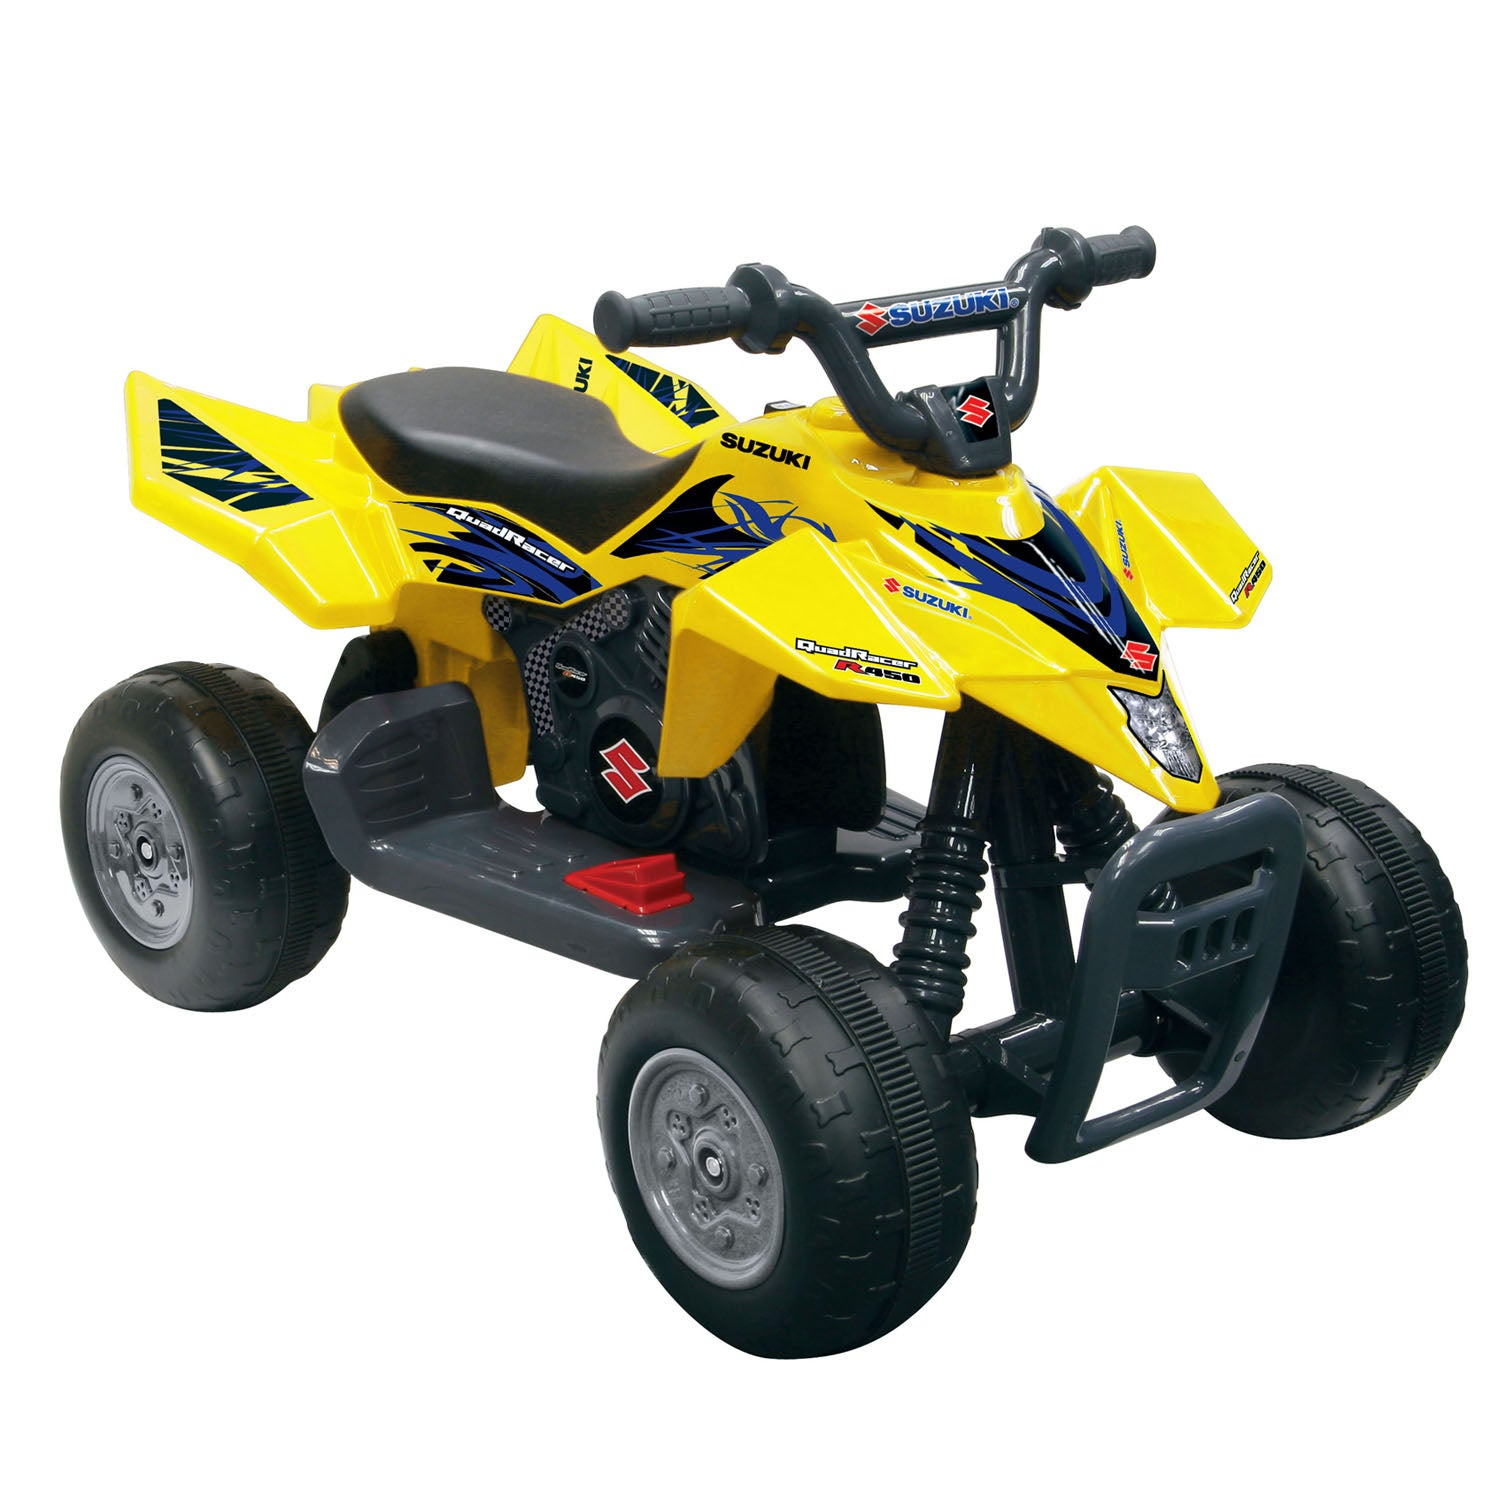 Argo ATV  The worlds most versatile AllTerrain Vehicles